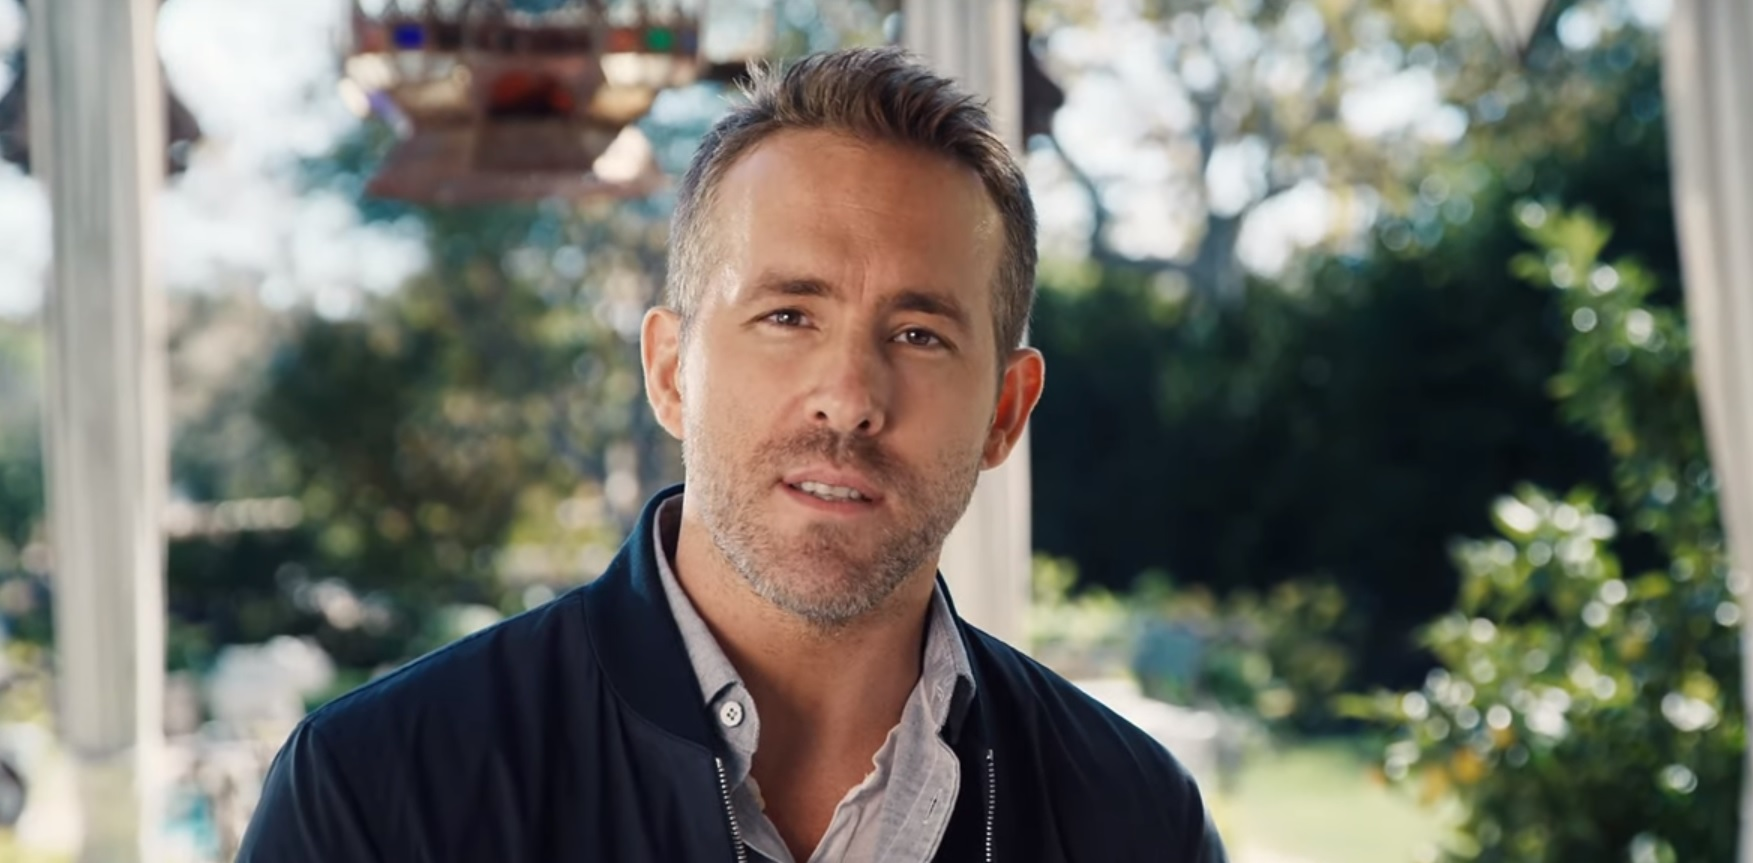 A still from Ryan Reynolds new promotional video for Aviation Gin.